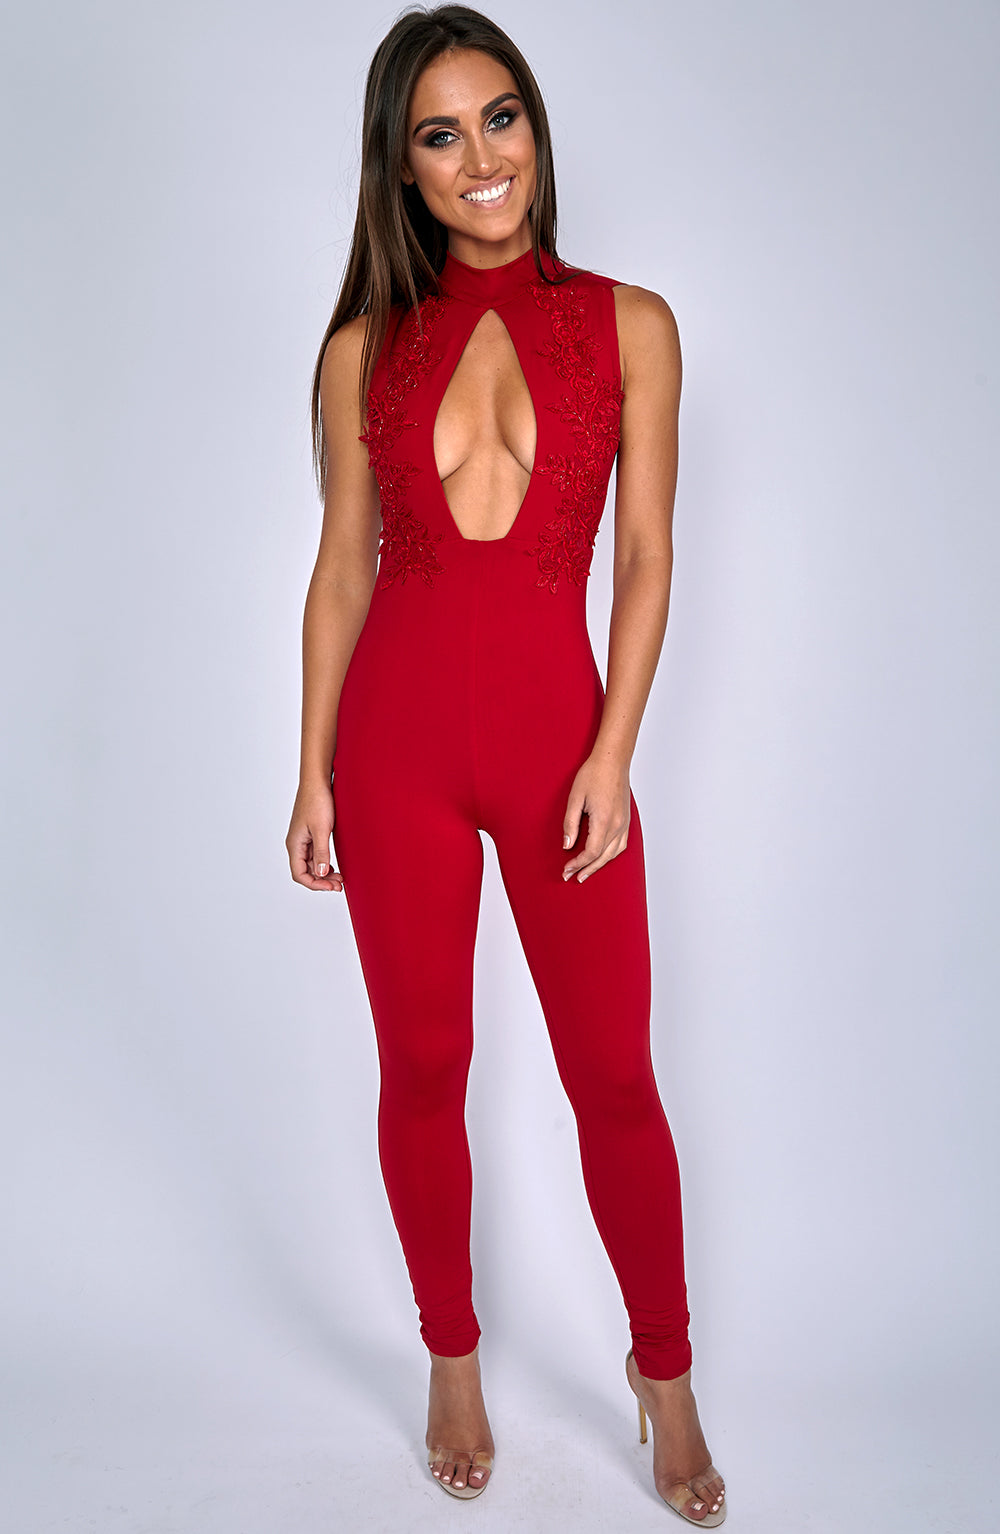 Take It Or Leave It Jumpsuit - Red